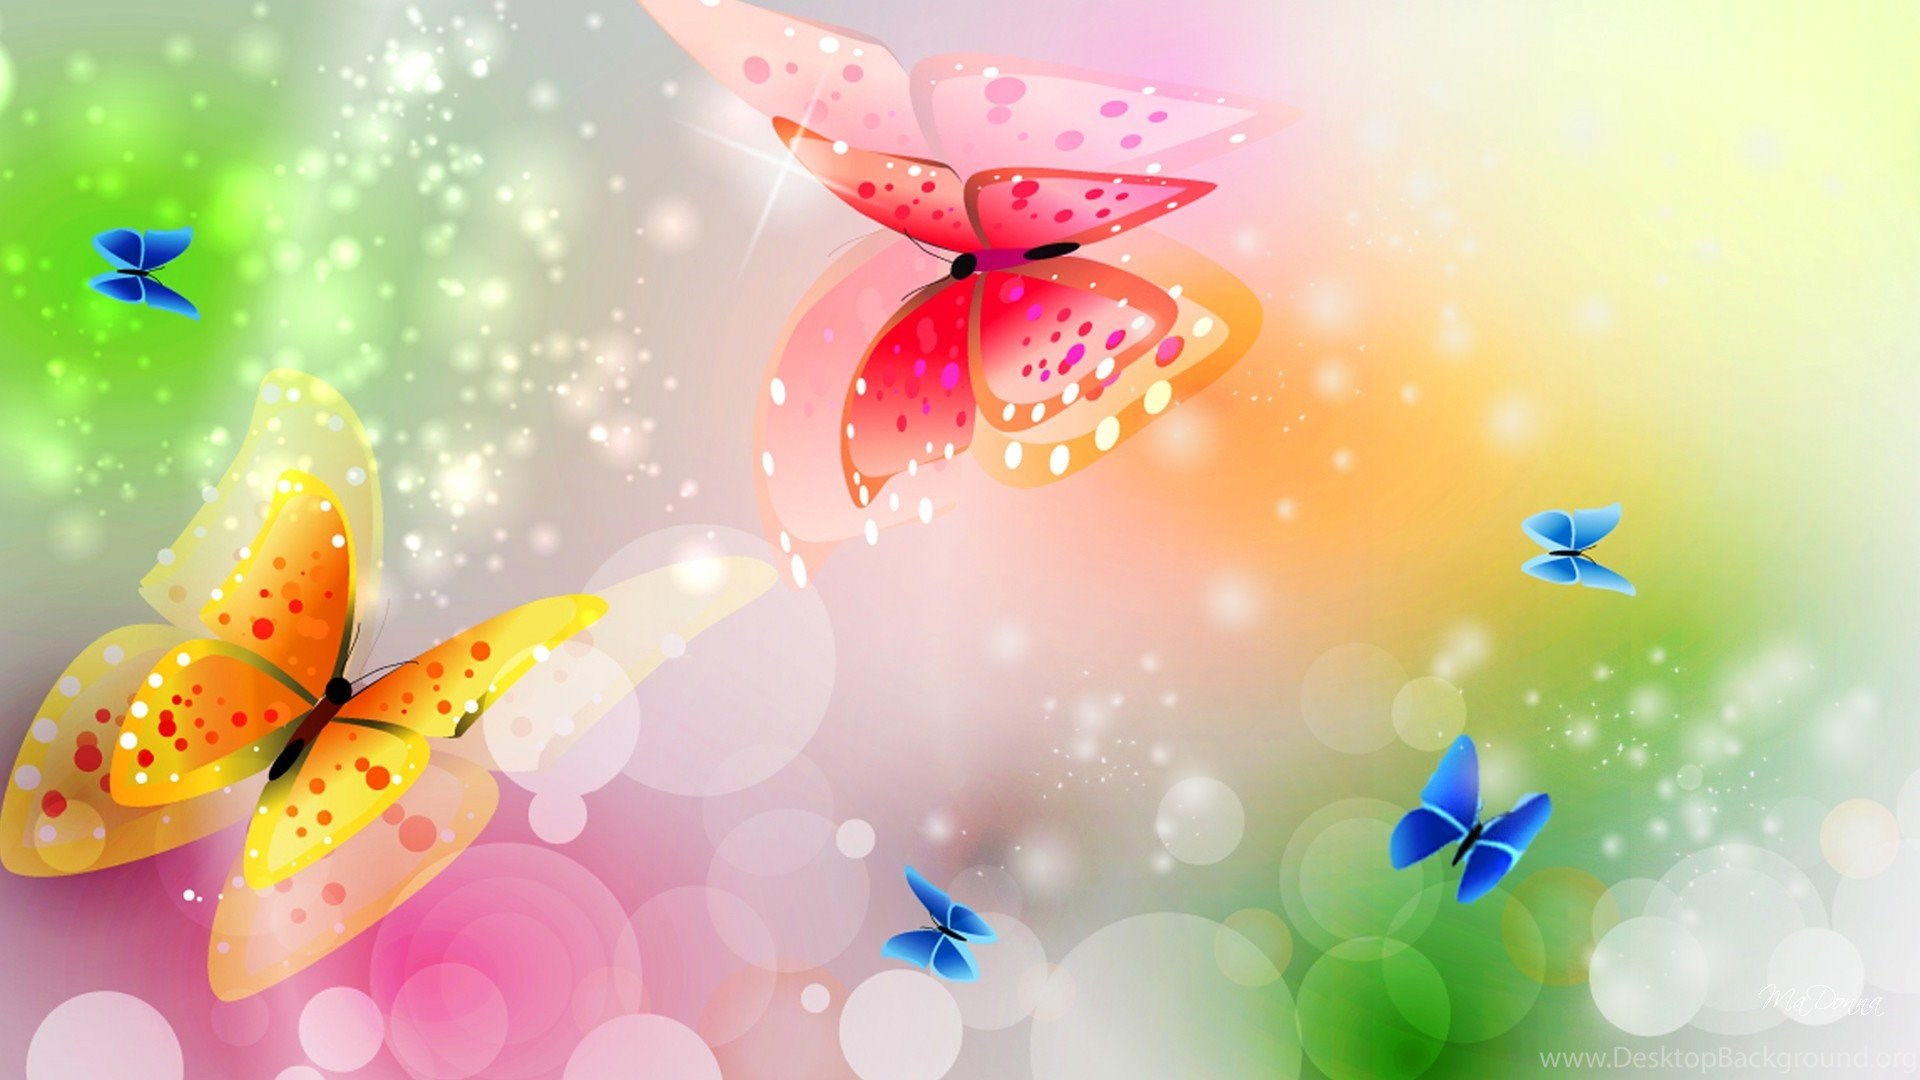 Hd Animated Colorful Butterfly Wallpapers 1080p Hirewallpapers 6821 Desktop Background